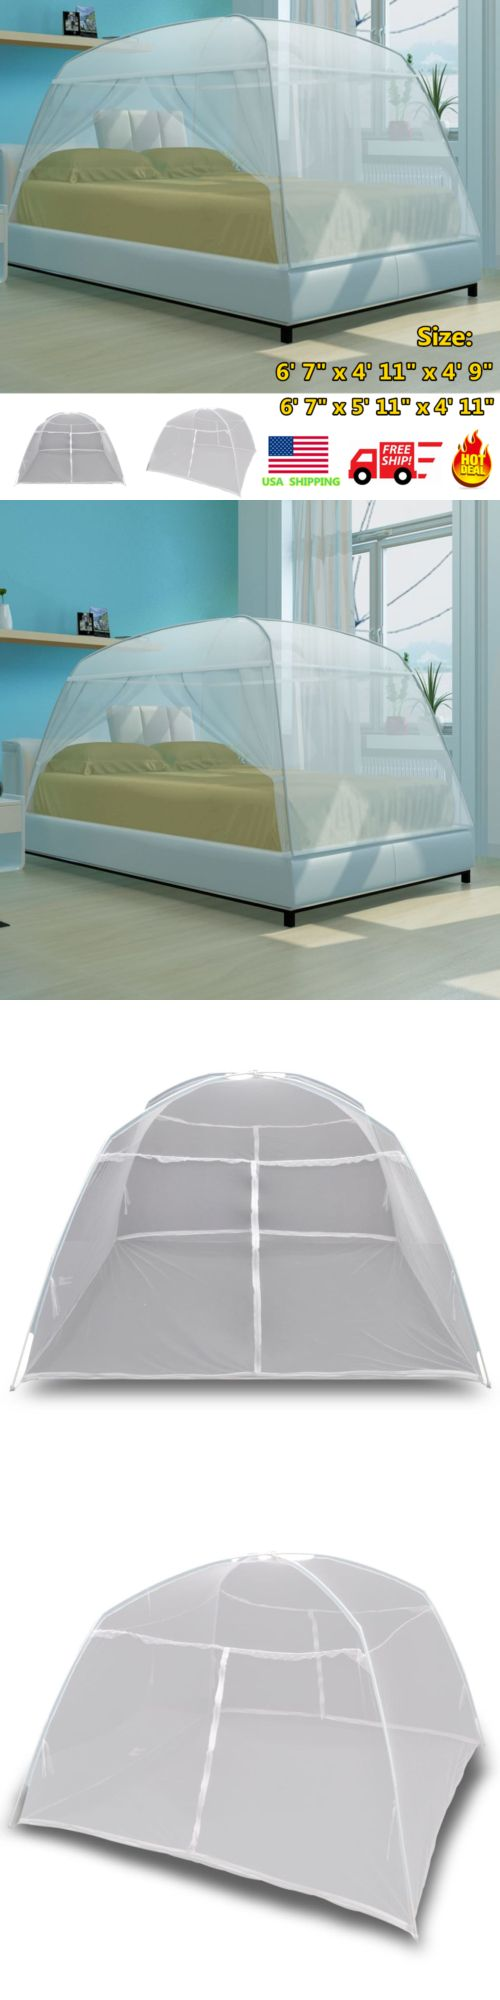 Canopies And Netting 48090 White Canopy Mongolia Net Mosquito Mesh Tent Net Indoor Outdoor Camping Large Buy It Now O Kids Canopy Canopy Outdoor Diy Canopy